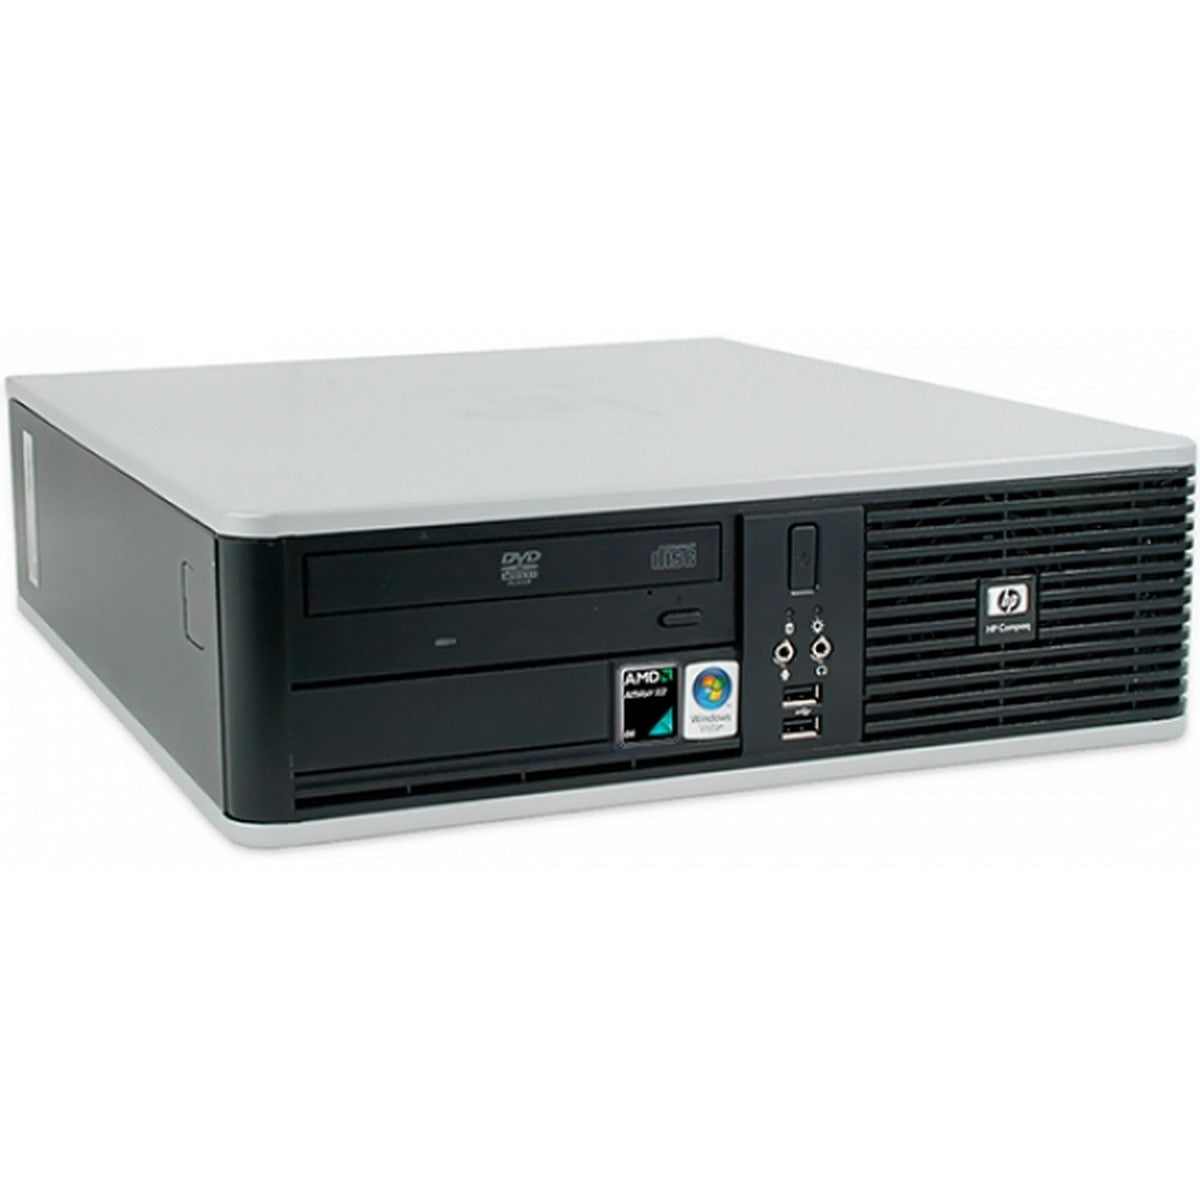 Used HP Compaq 5850 Desktop, Amd FX-Series ATHLON II X2, 4GB RAM, 250GB HDD